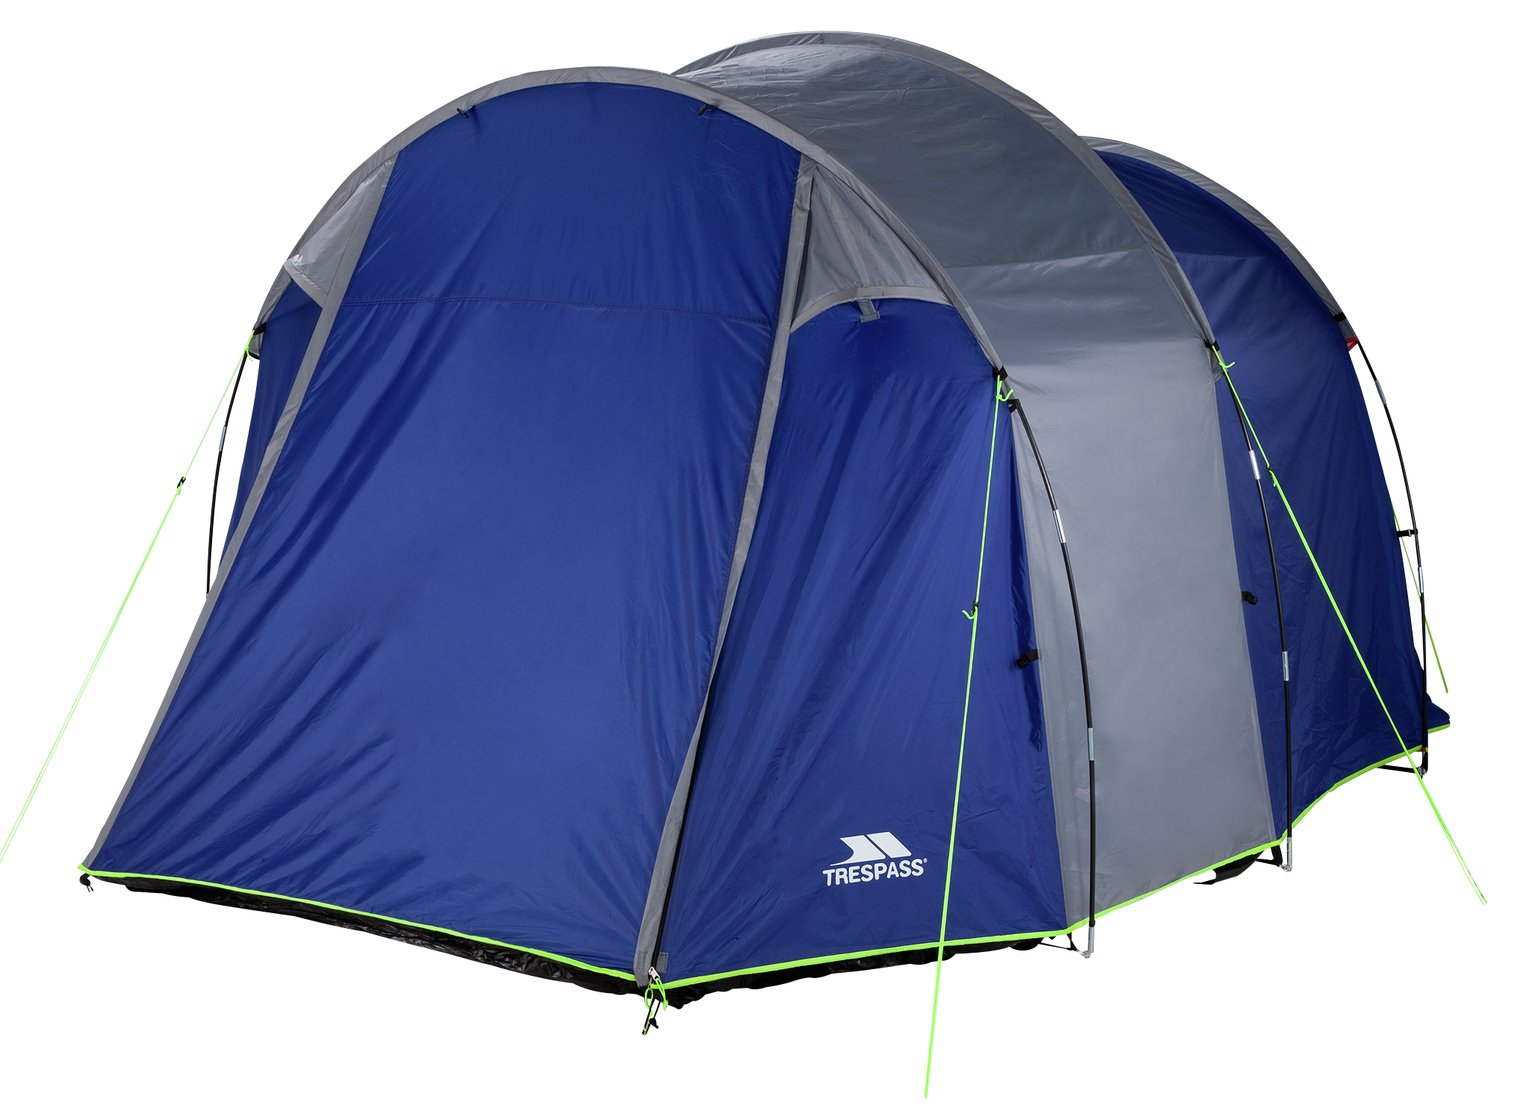 Trespass 4 Man Blue Tunnel Tent